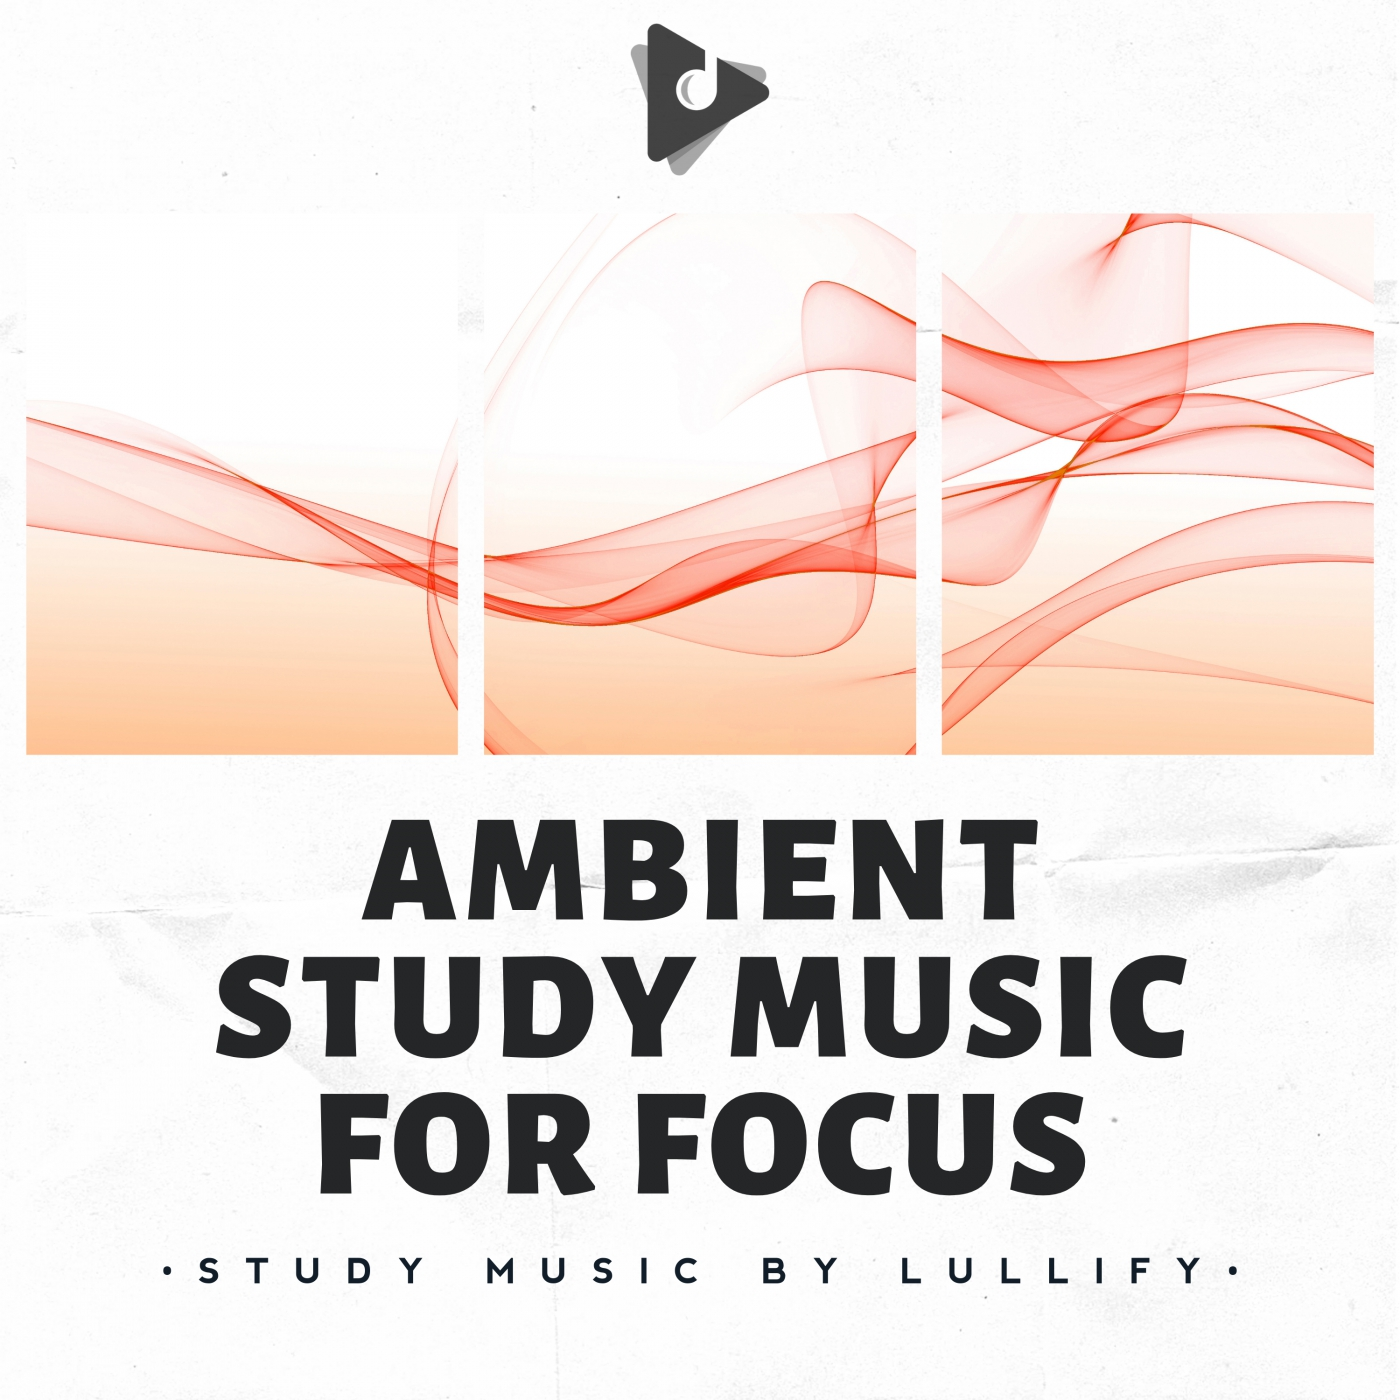 Ambient Study Music for Focus